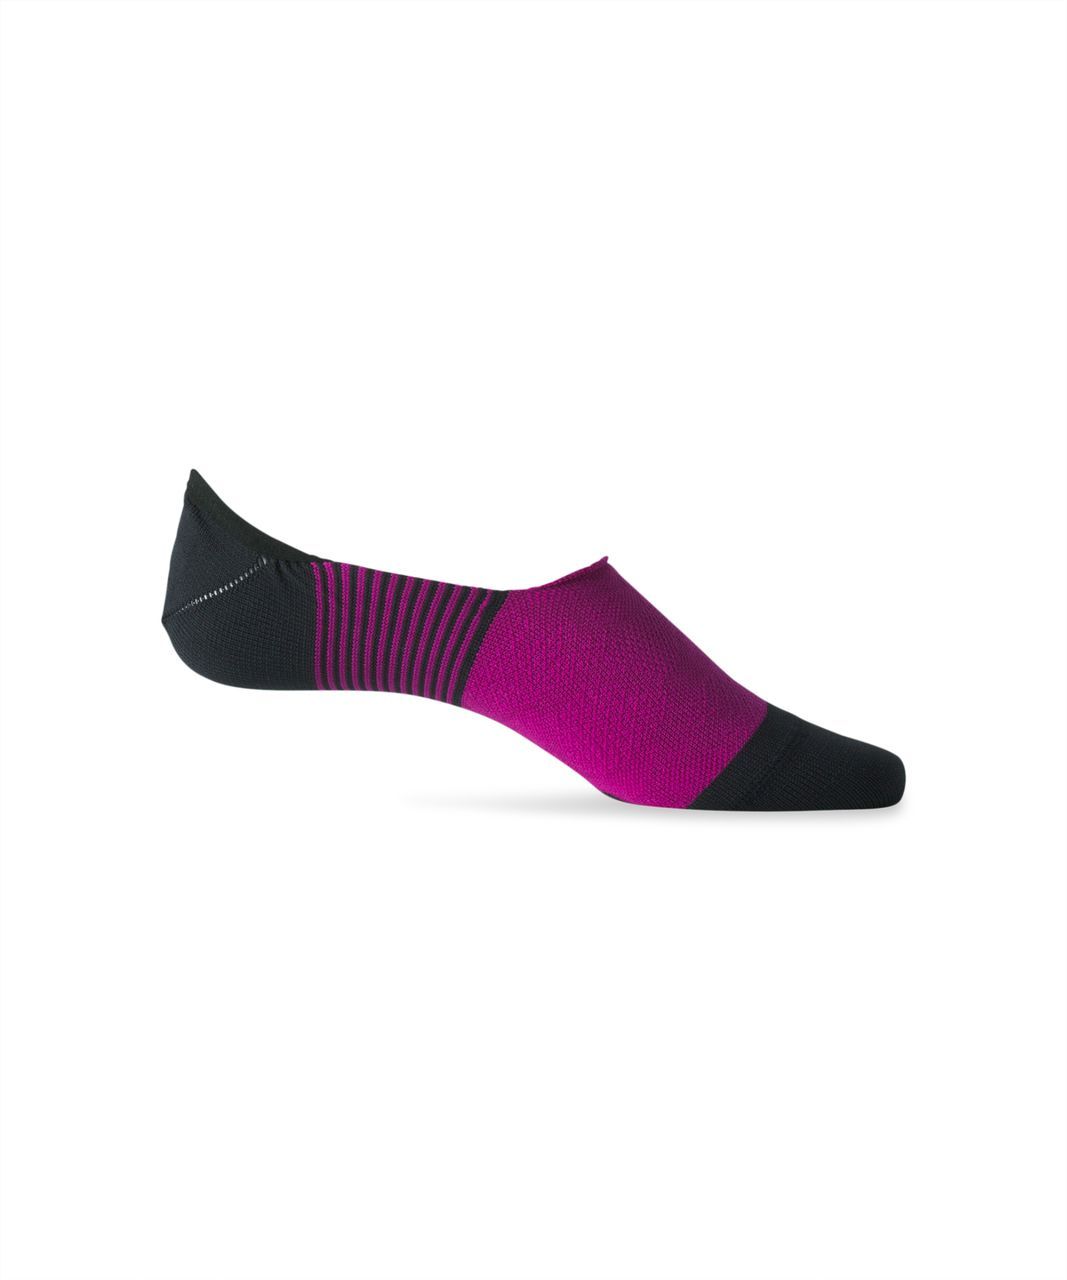 Lululemon Secret Sock - Deep Fuschia / Black / Ripened Raspberry